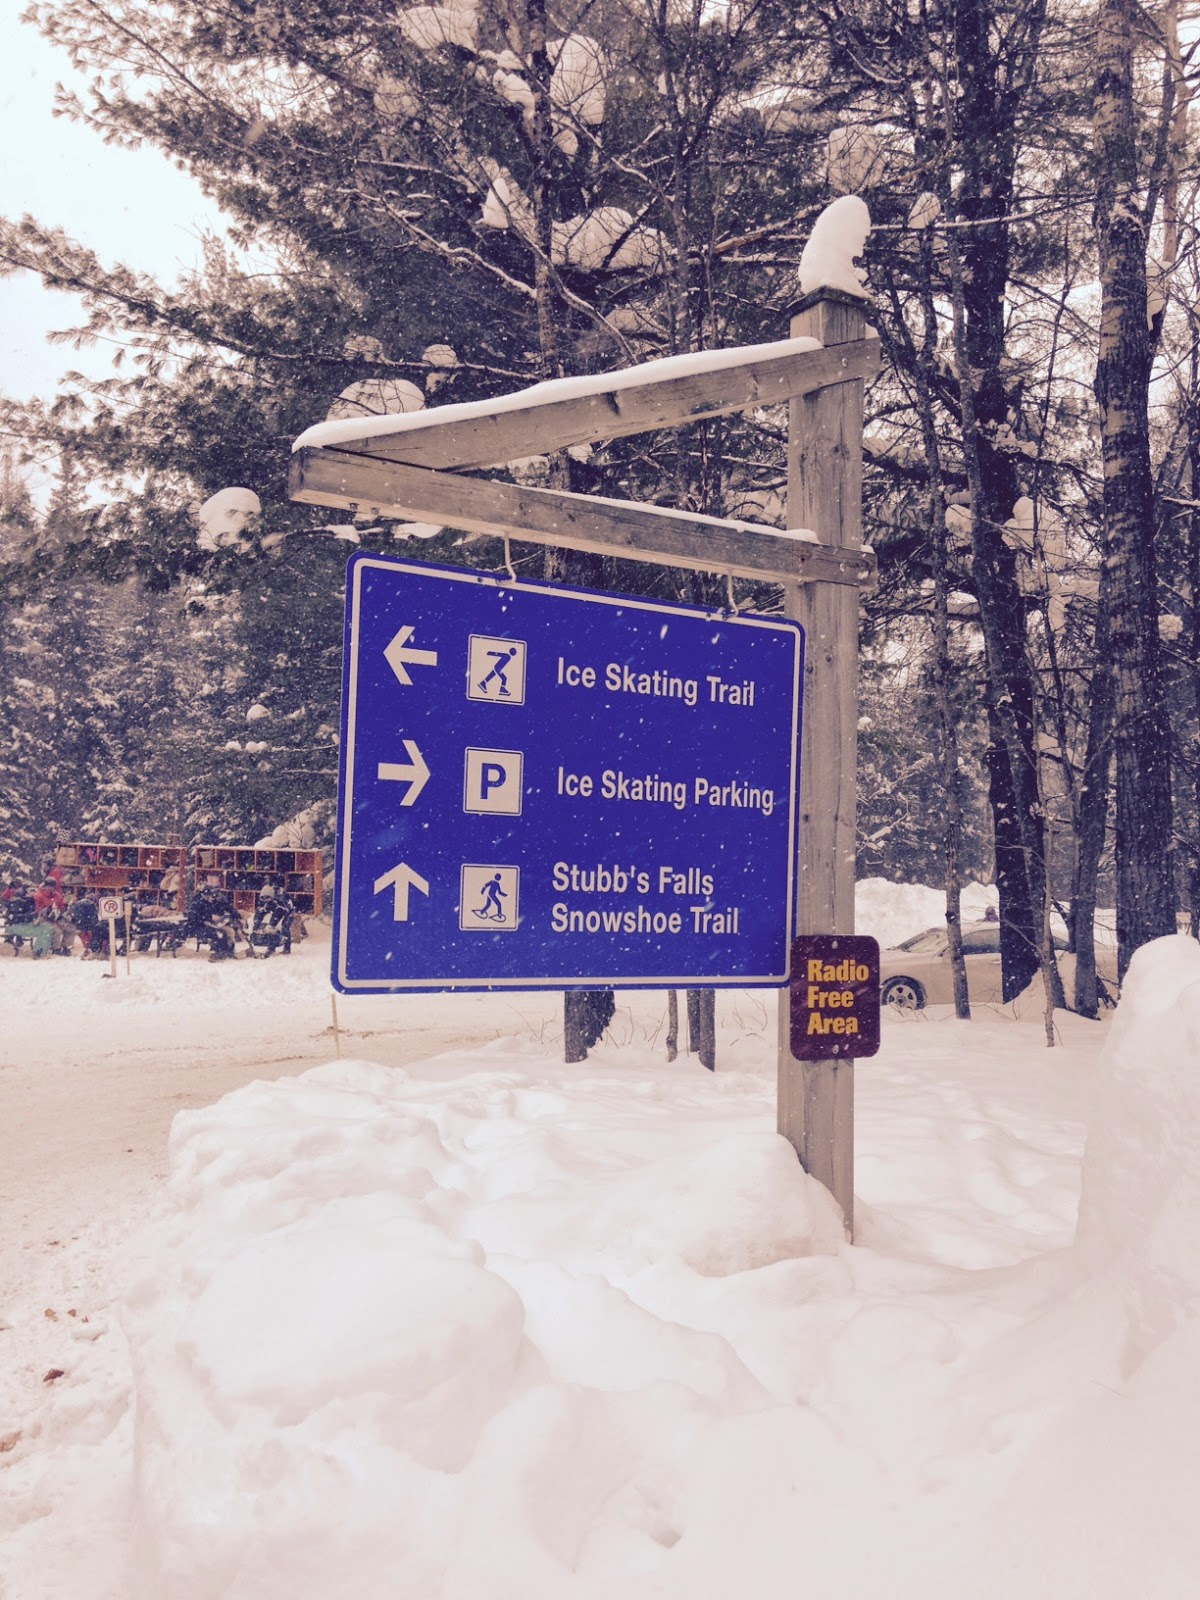 Wayfinding signs at the Arrowhead Skating Trail